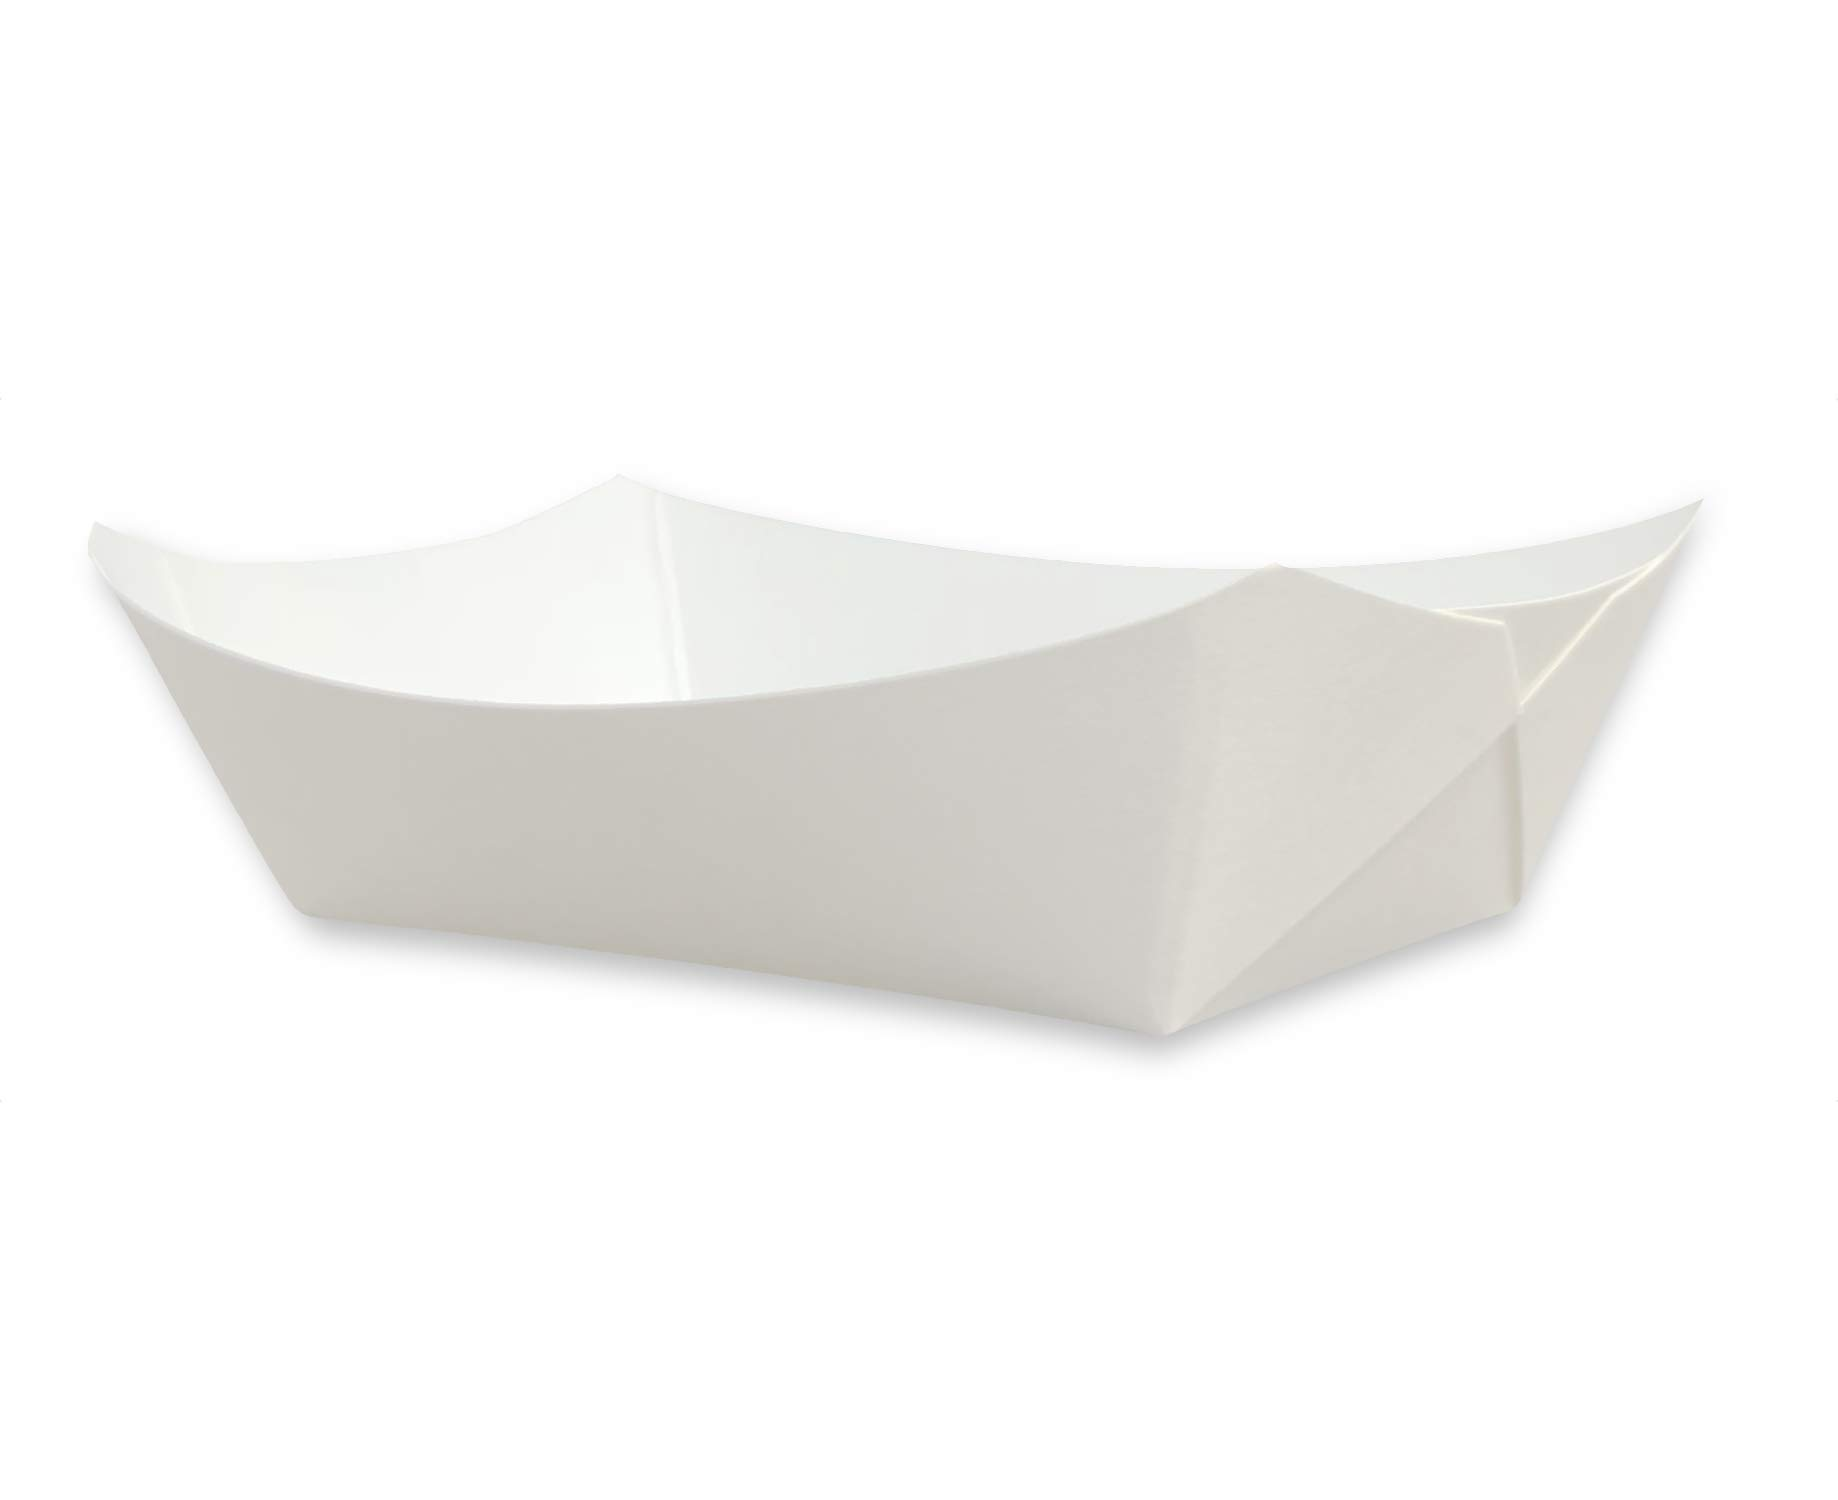 White Disposable Paper Food Serving Tray - Medium 250 pcs - Perfect for BBQ's, Picnics, Carnivals, Birthdays, Parties & Festivals #100